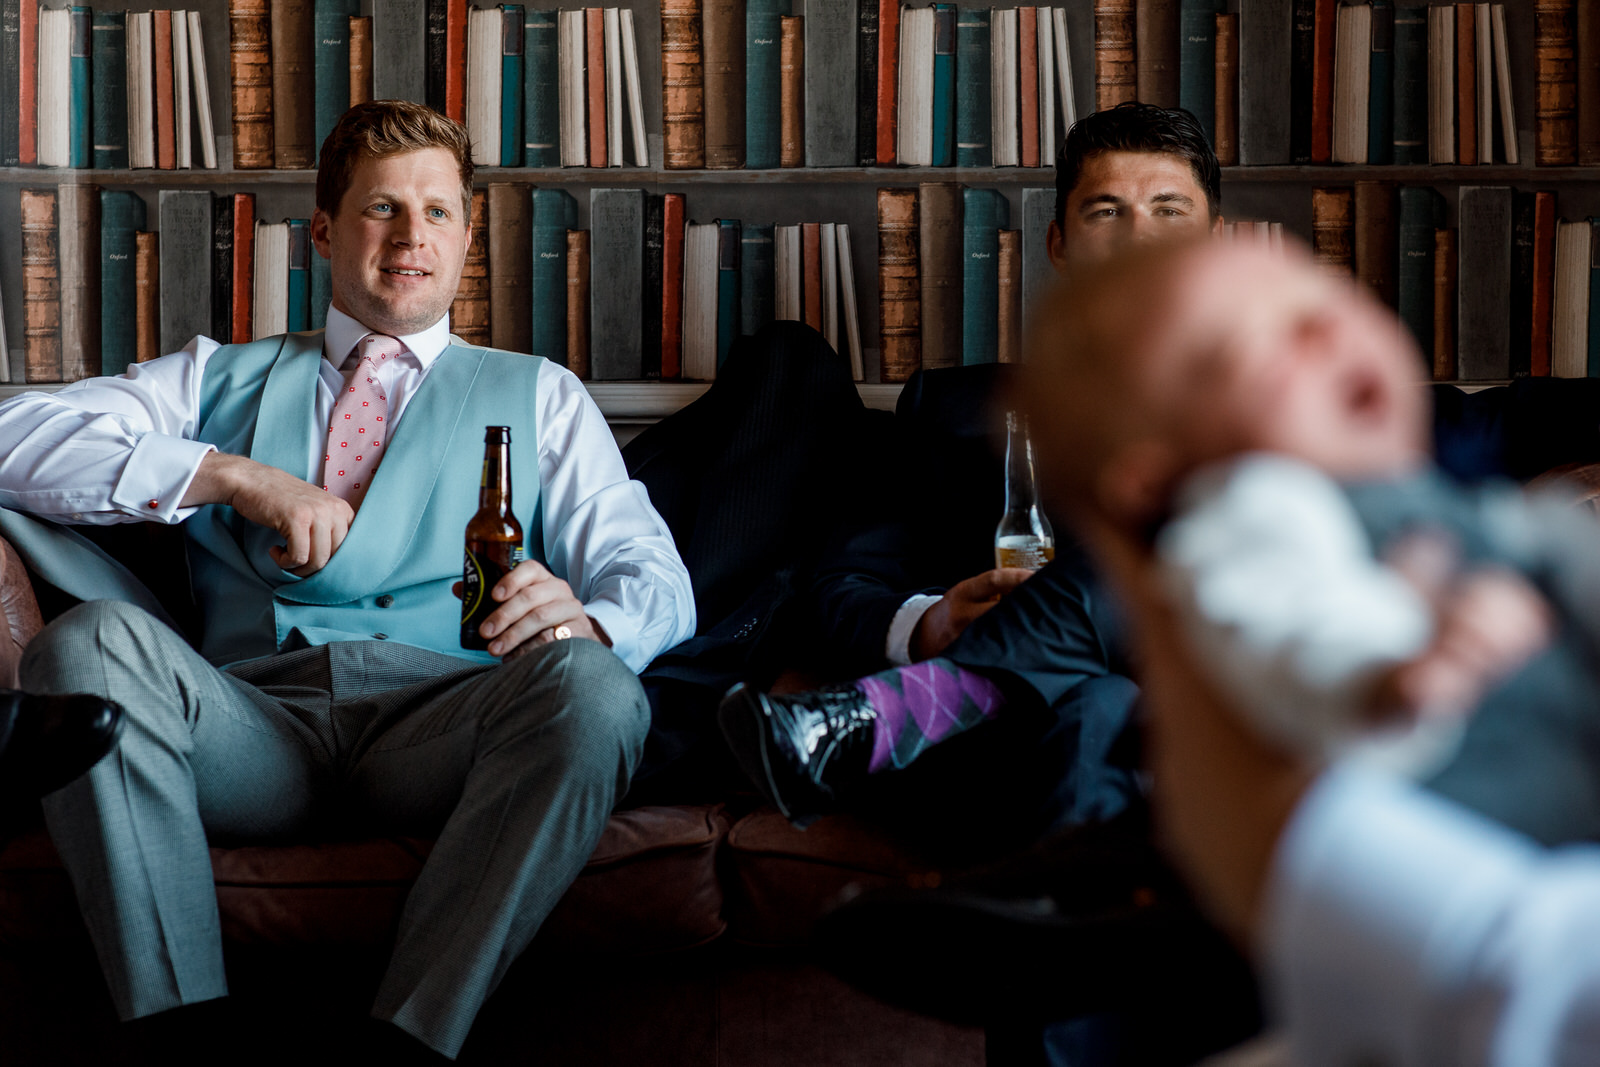 groom relaxing with beer before wedding